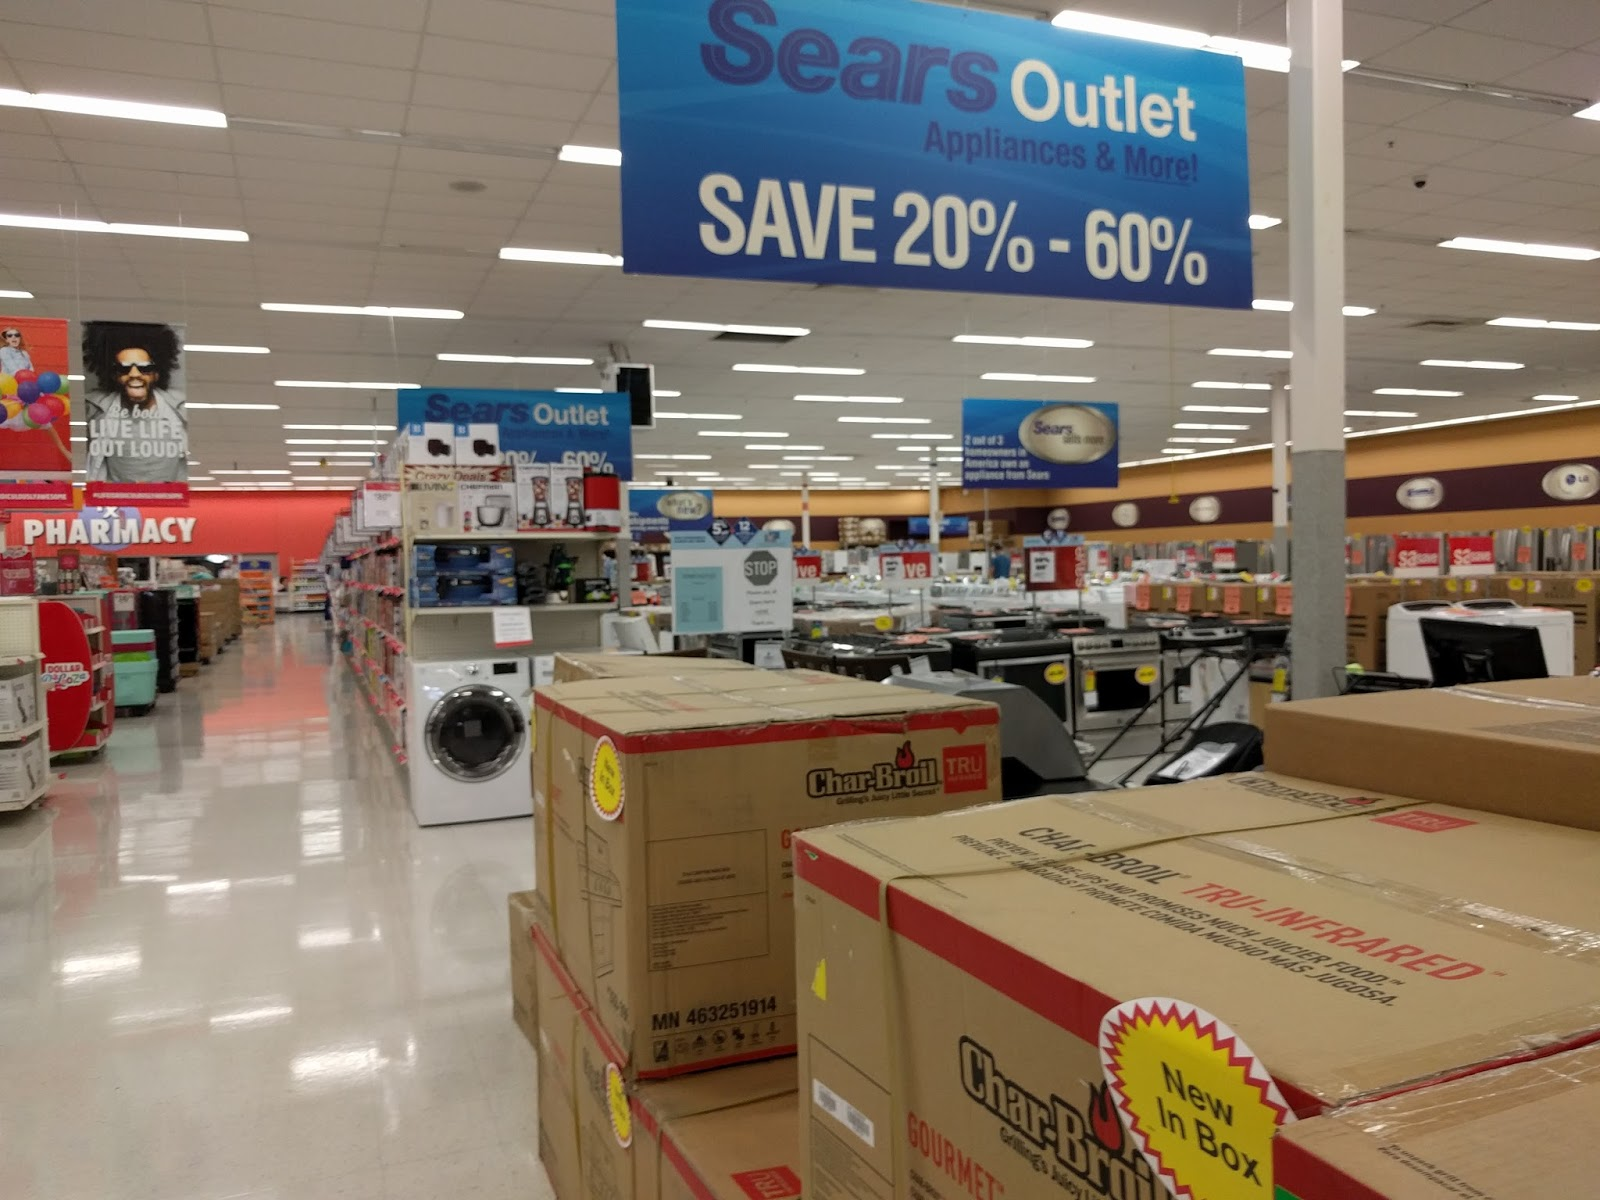 kmart vs sears Sears holdings (nasdaq:shld) continues to close many stores as its business struggleswith the news of the latest kmart store closures, it appears that over 200 kmart stores will close during fy .